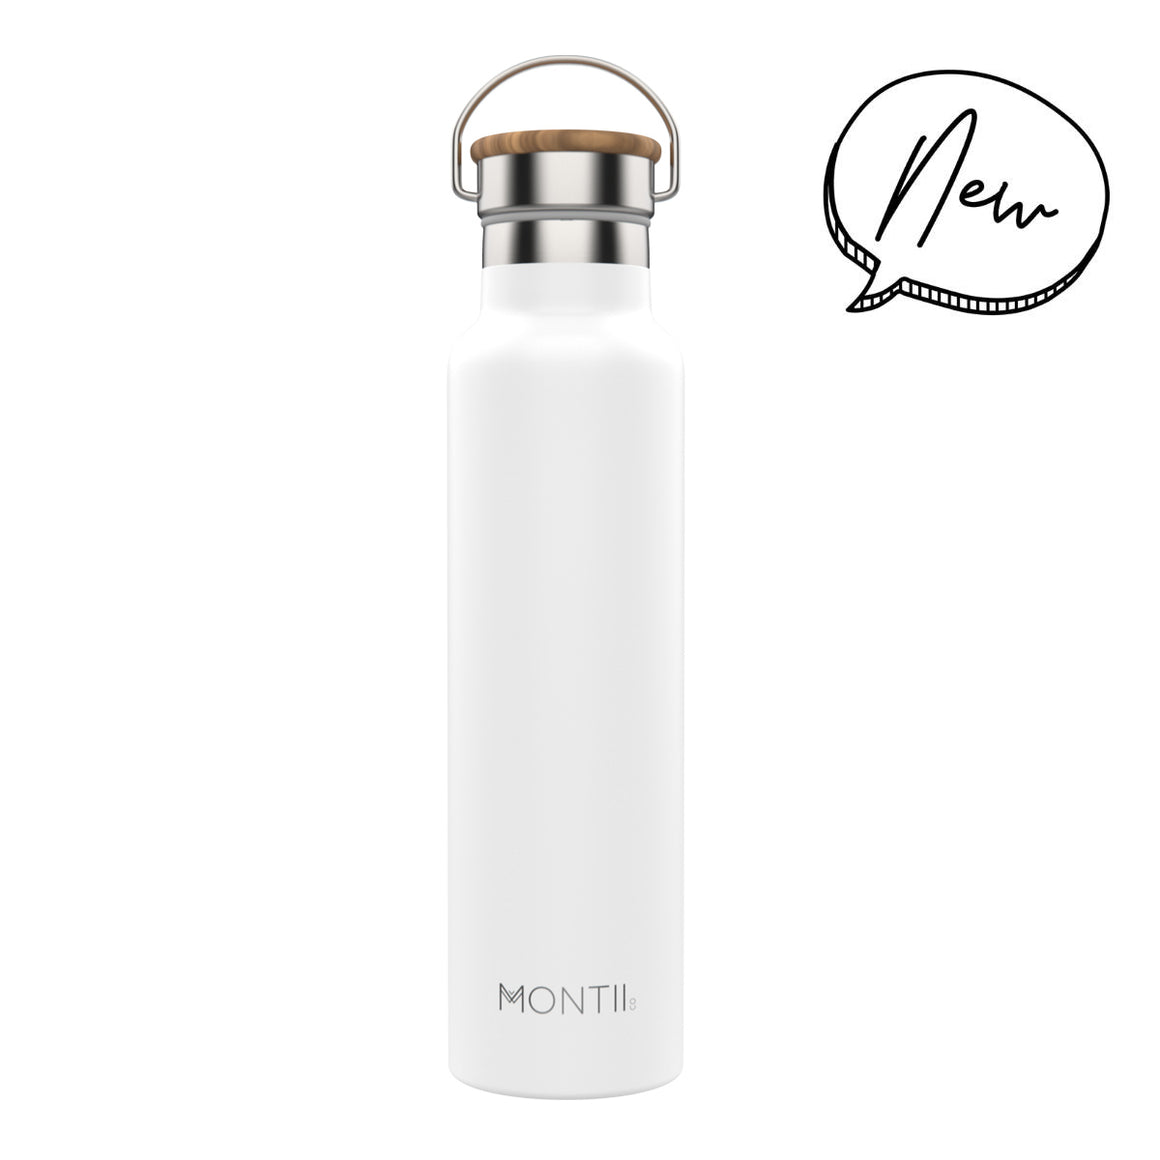 MontiiCo MEGA Insulated Drink Bottle (1000 mls) - White